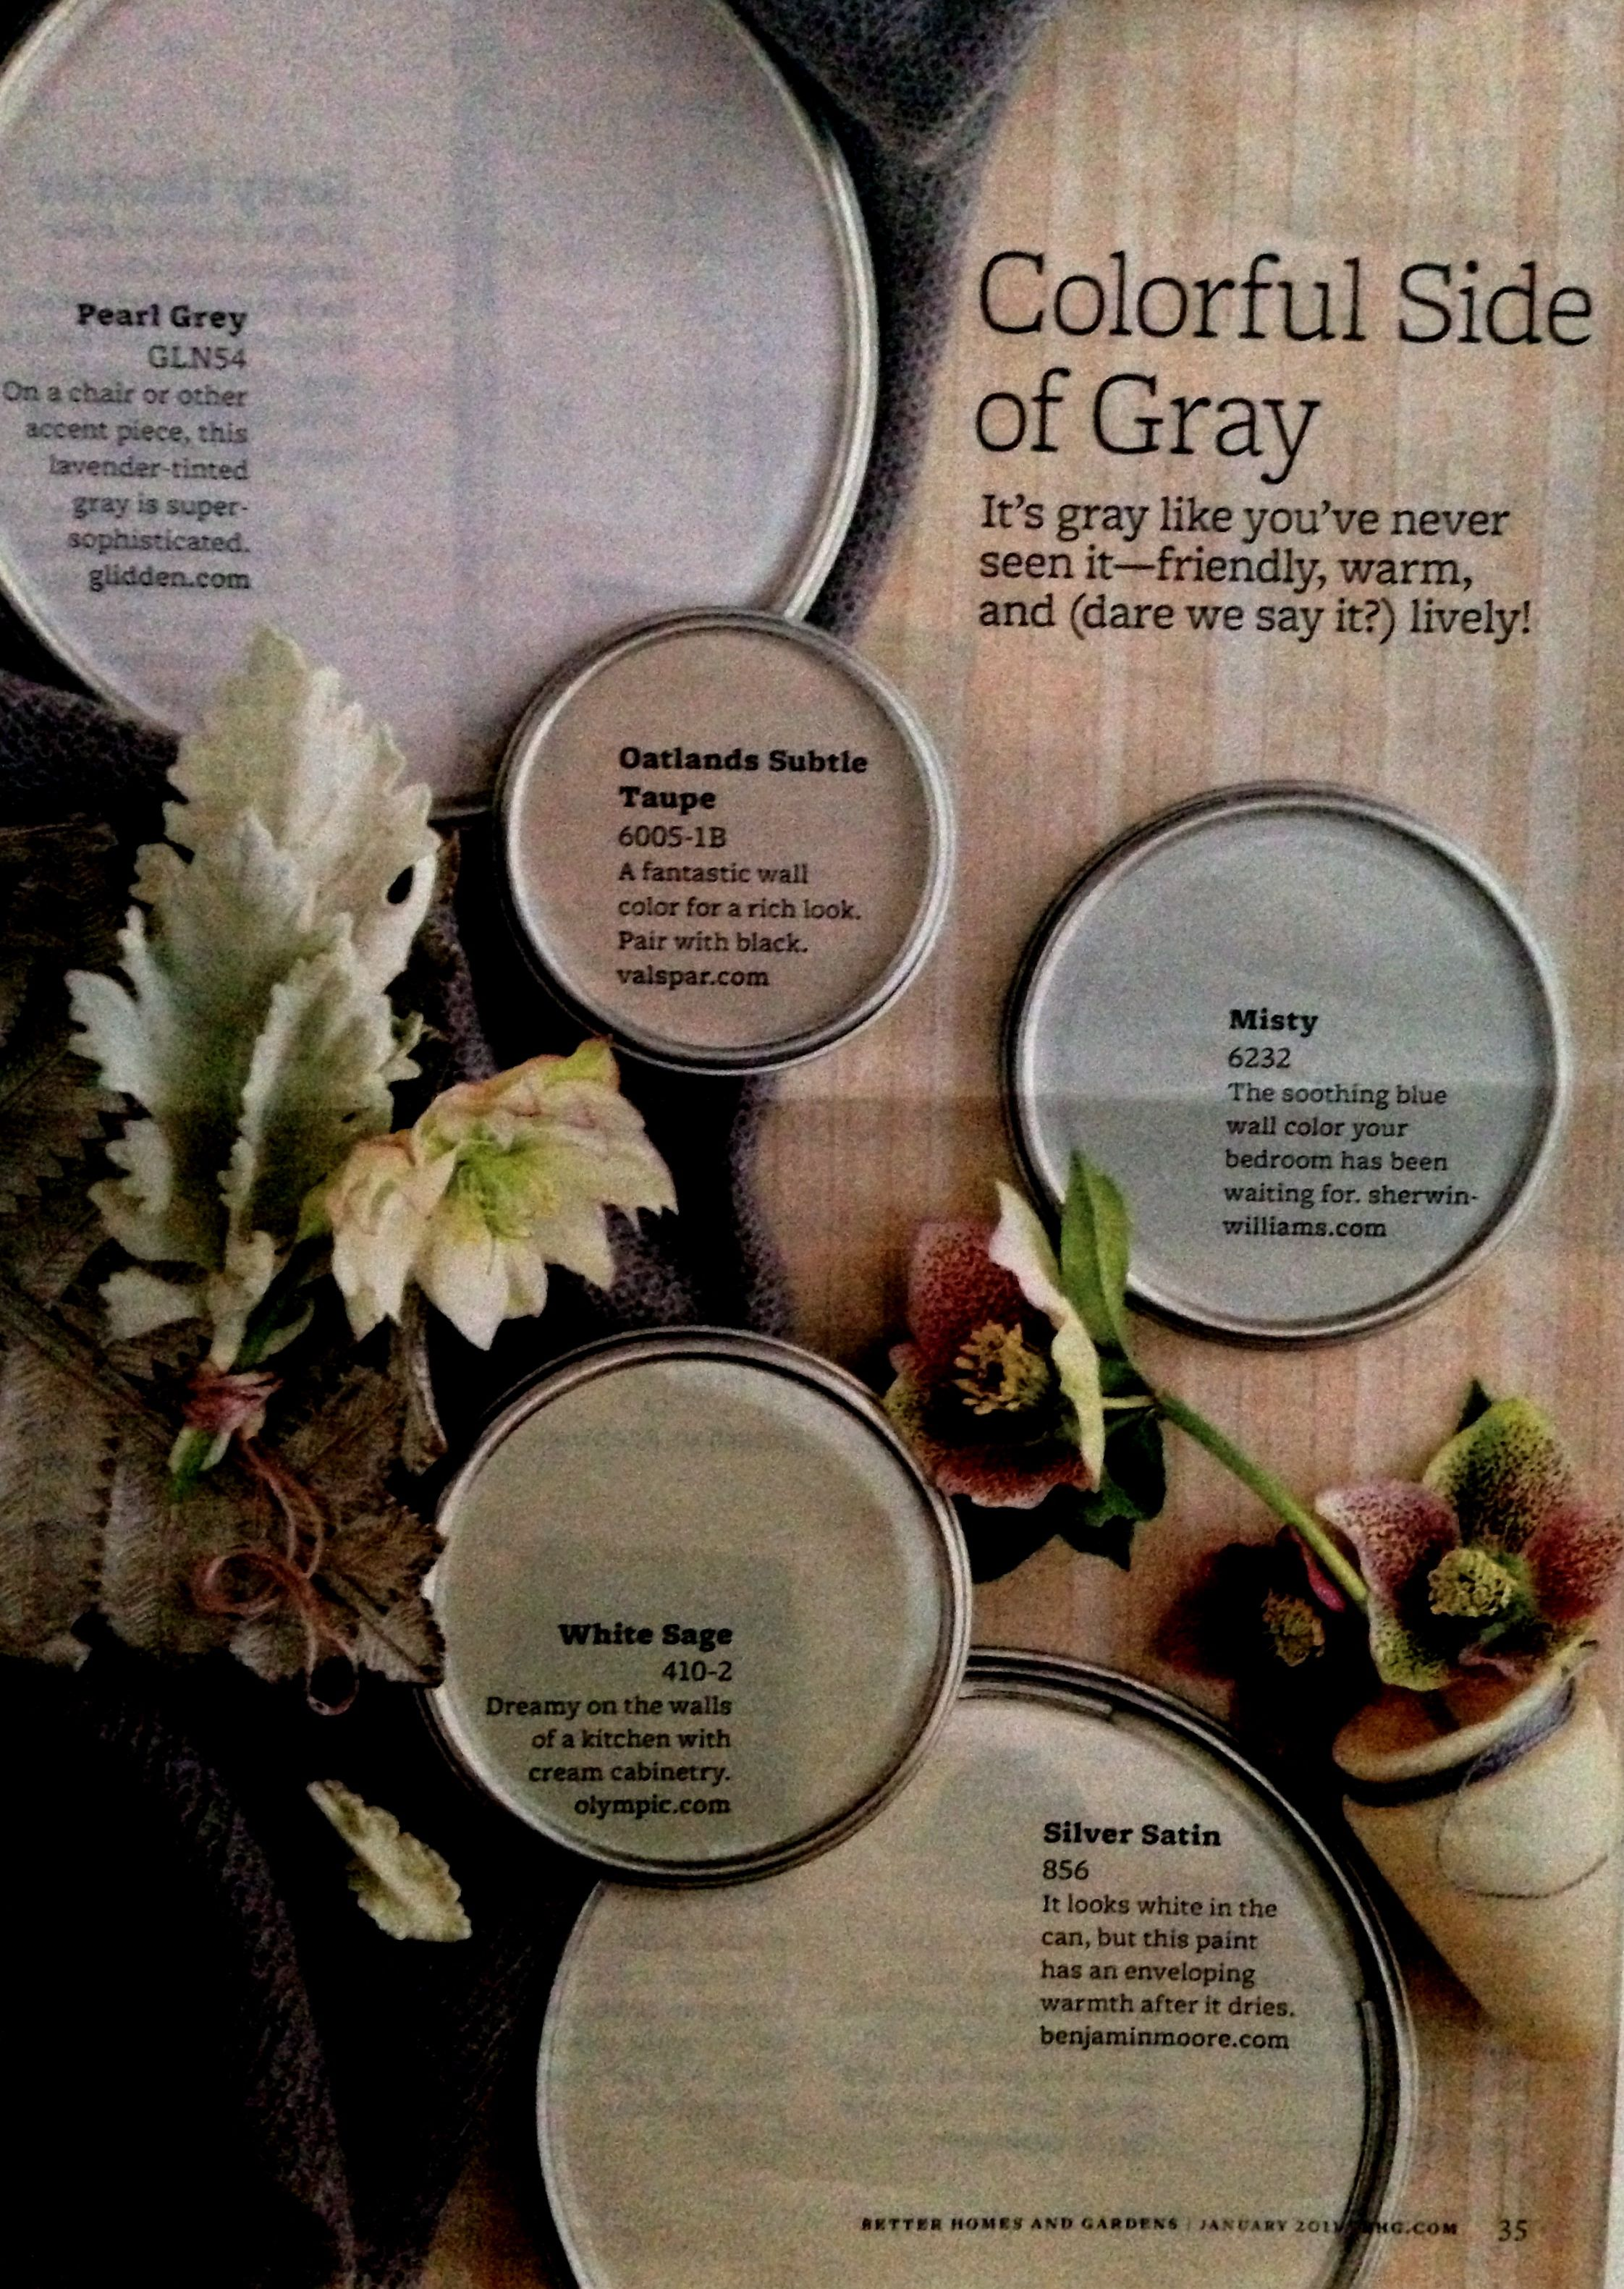 Better Homes And Gardens Colorful Side Of Gray Paint Samples